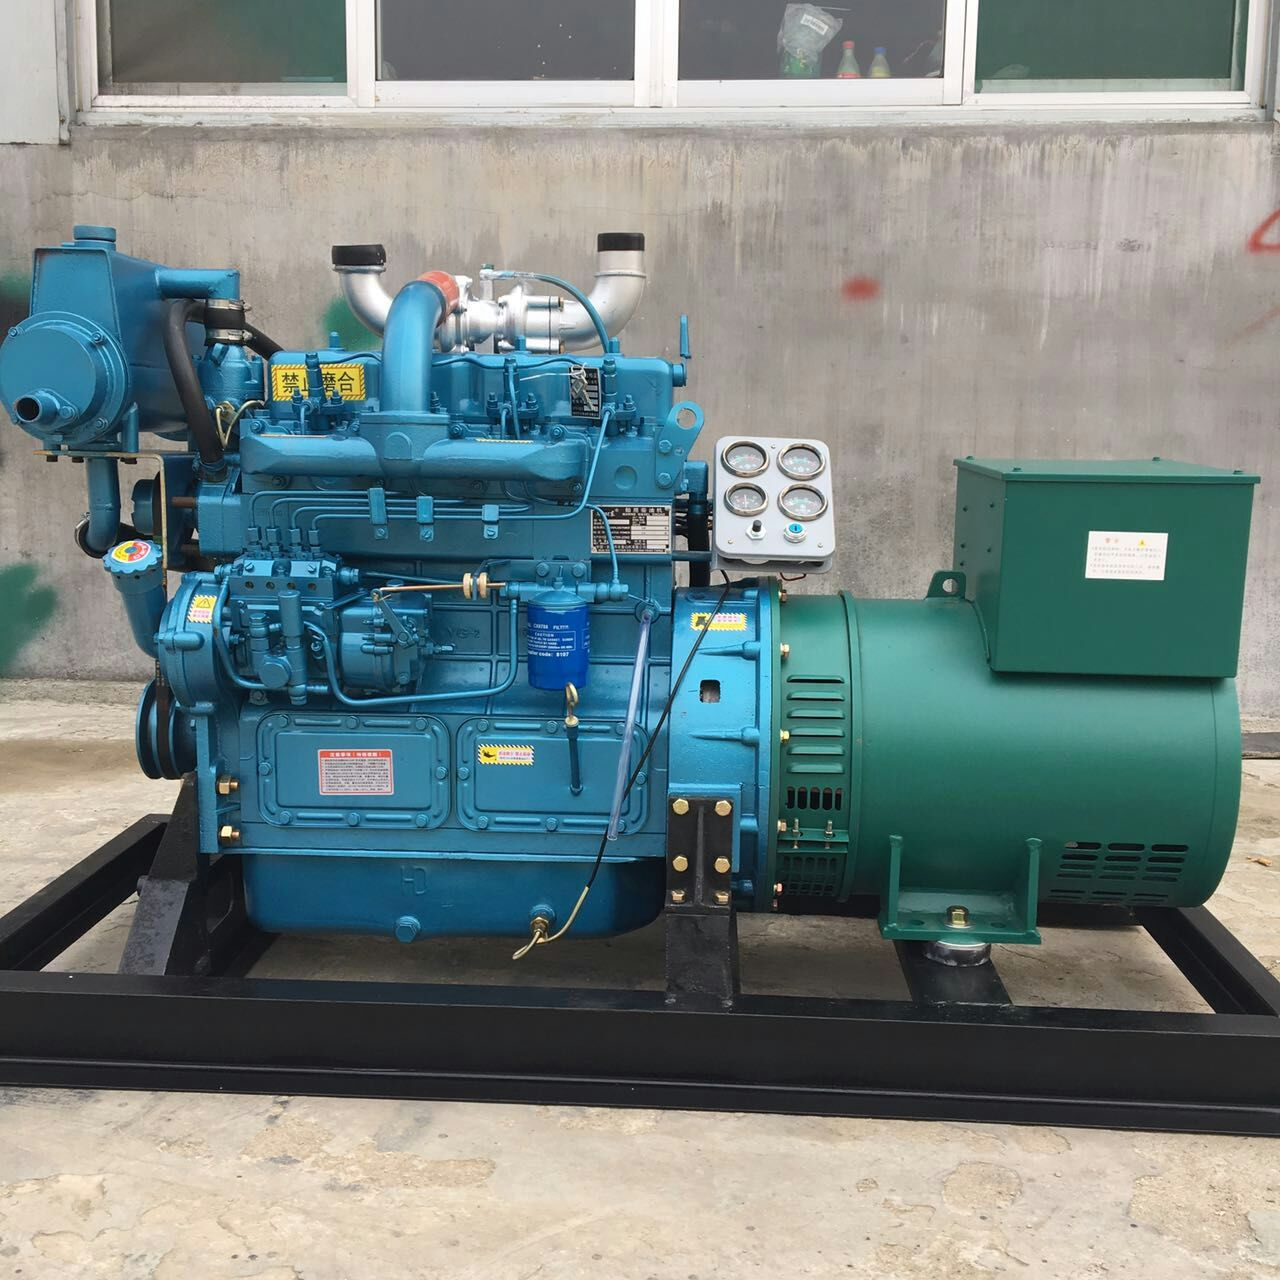 Provide 300 kw diesel generator set, ex-factory price, sales quality, excellent performance